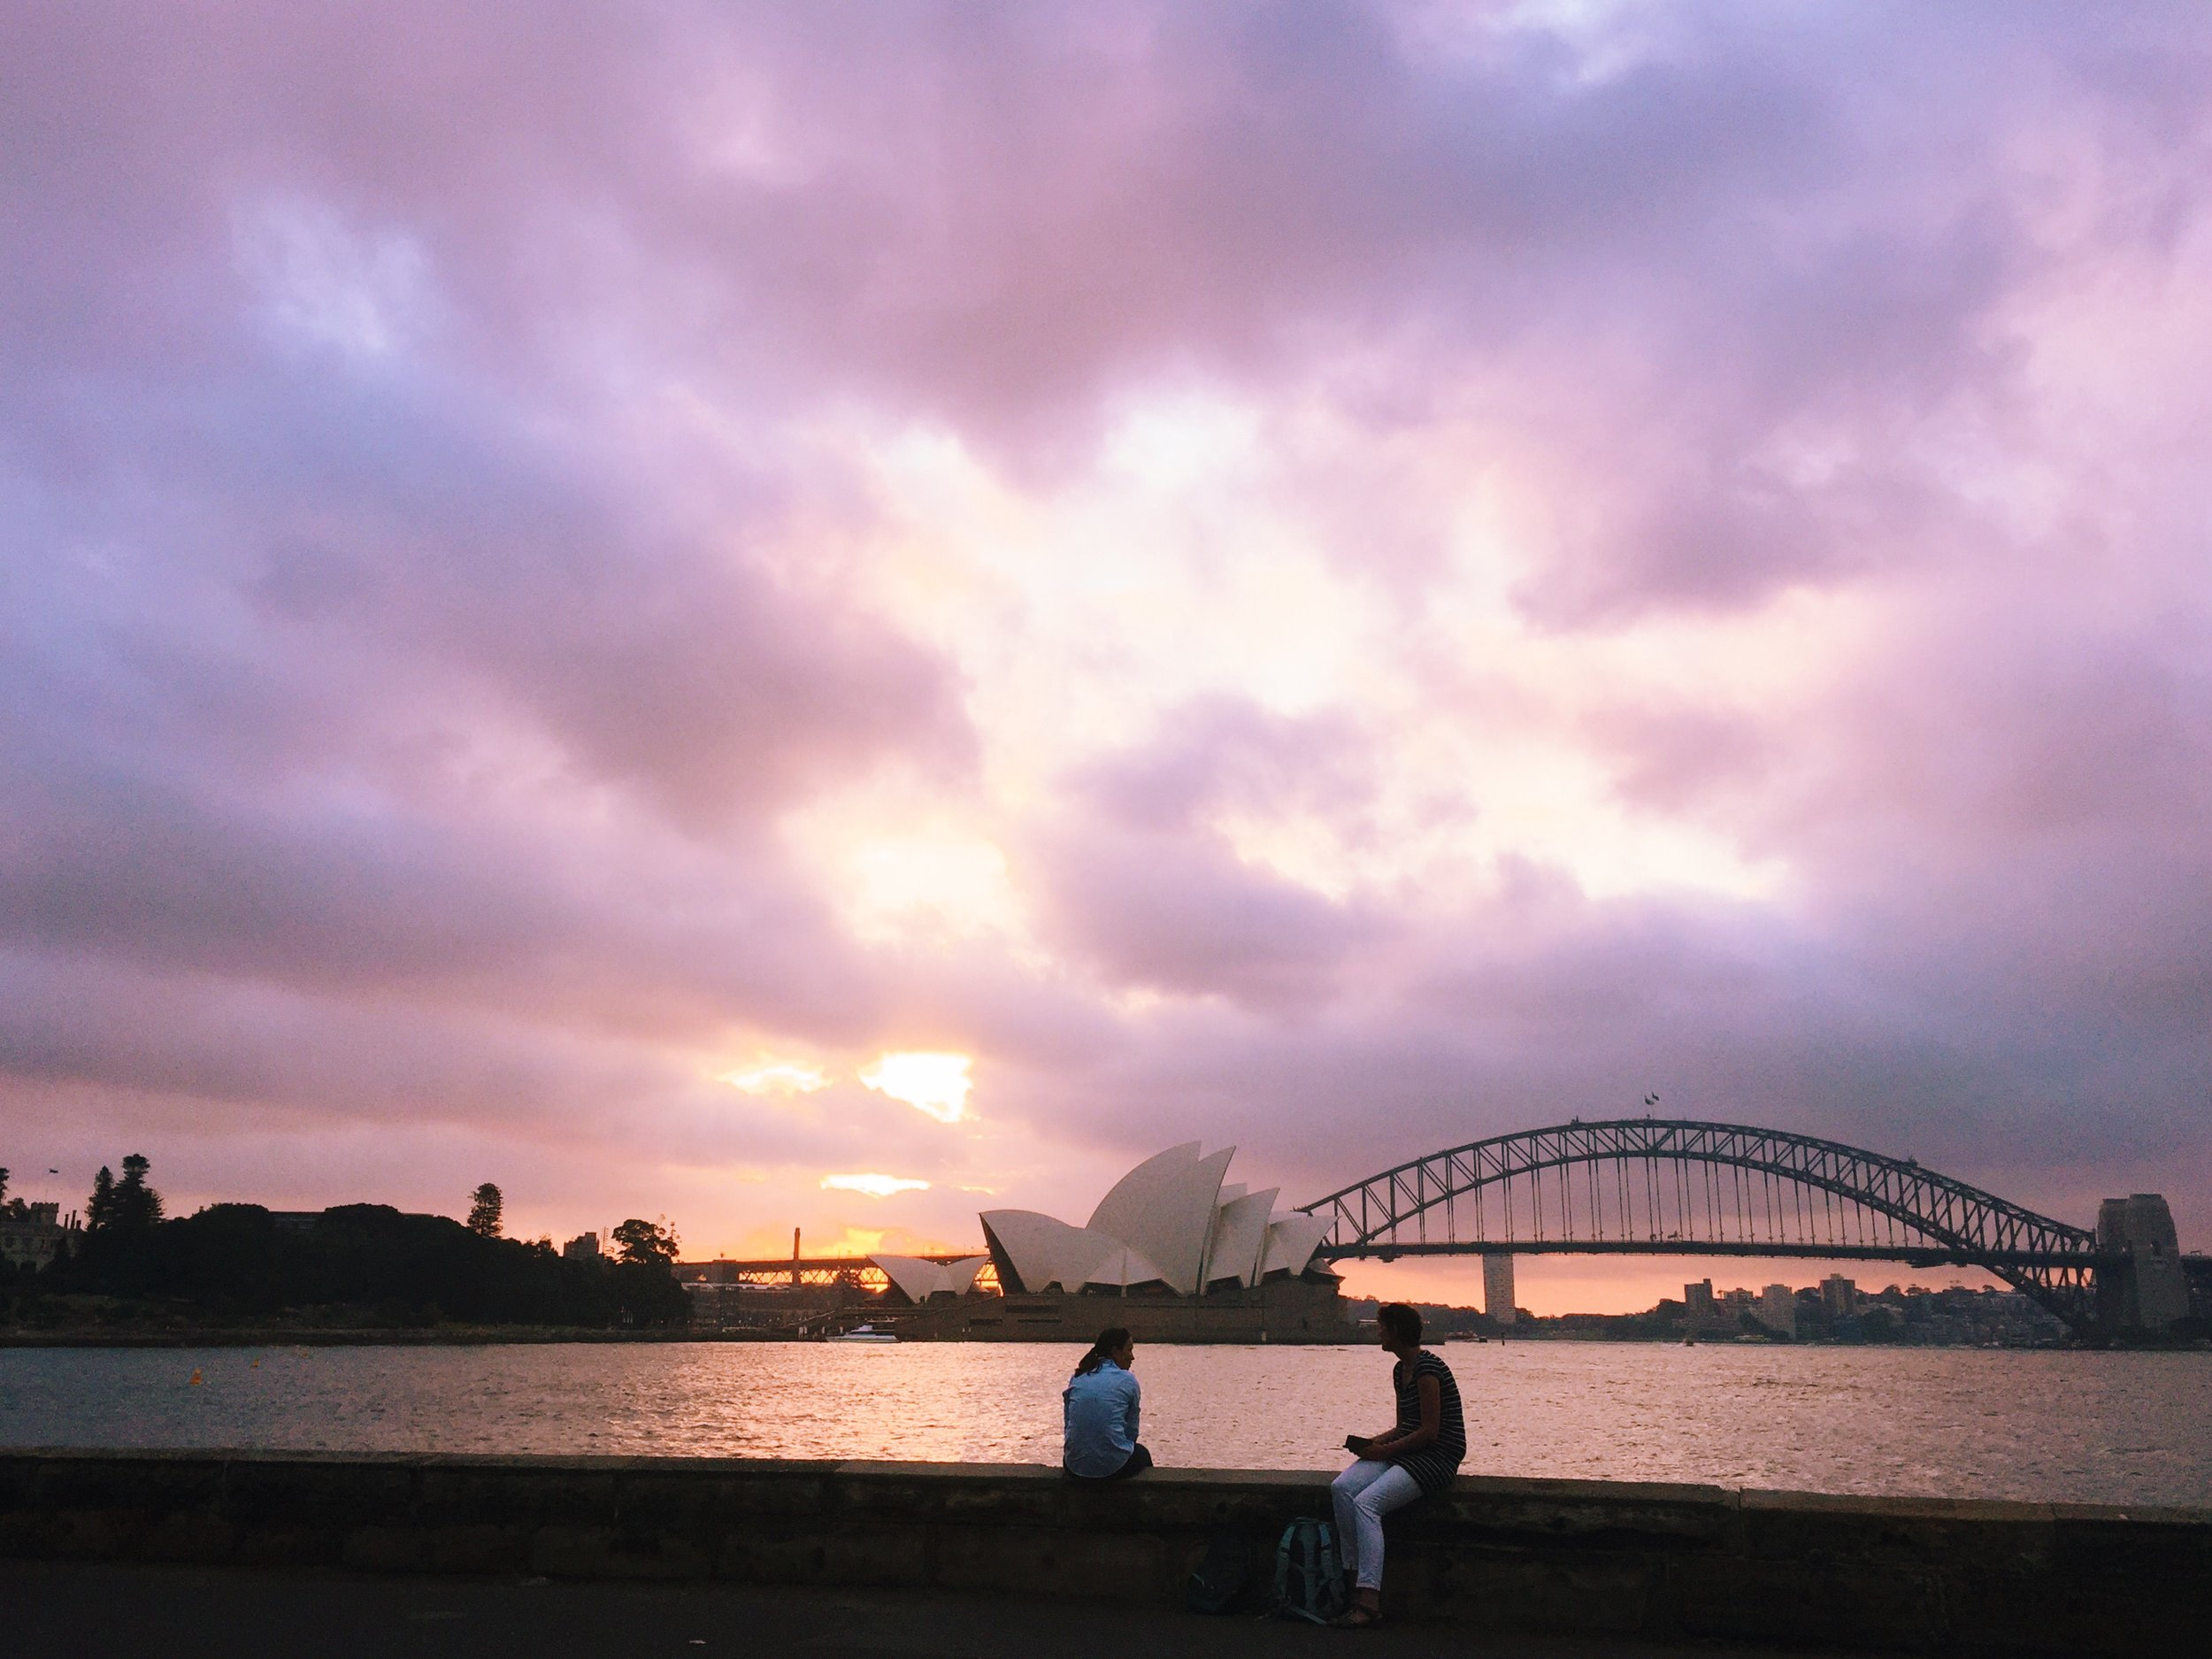 The view from Mrs. Macquarie's chair